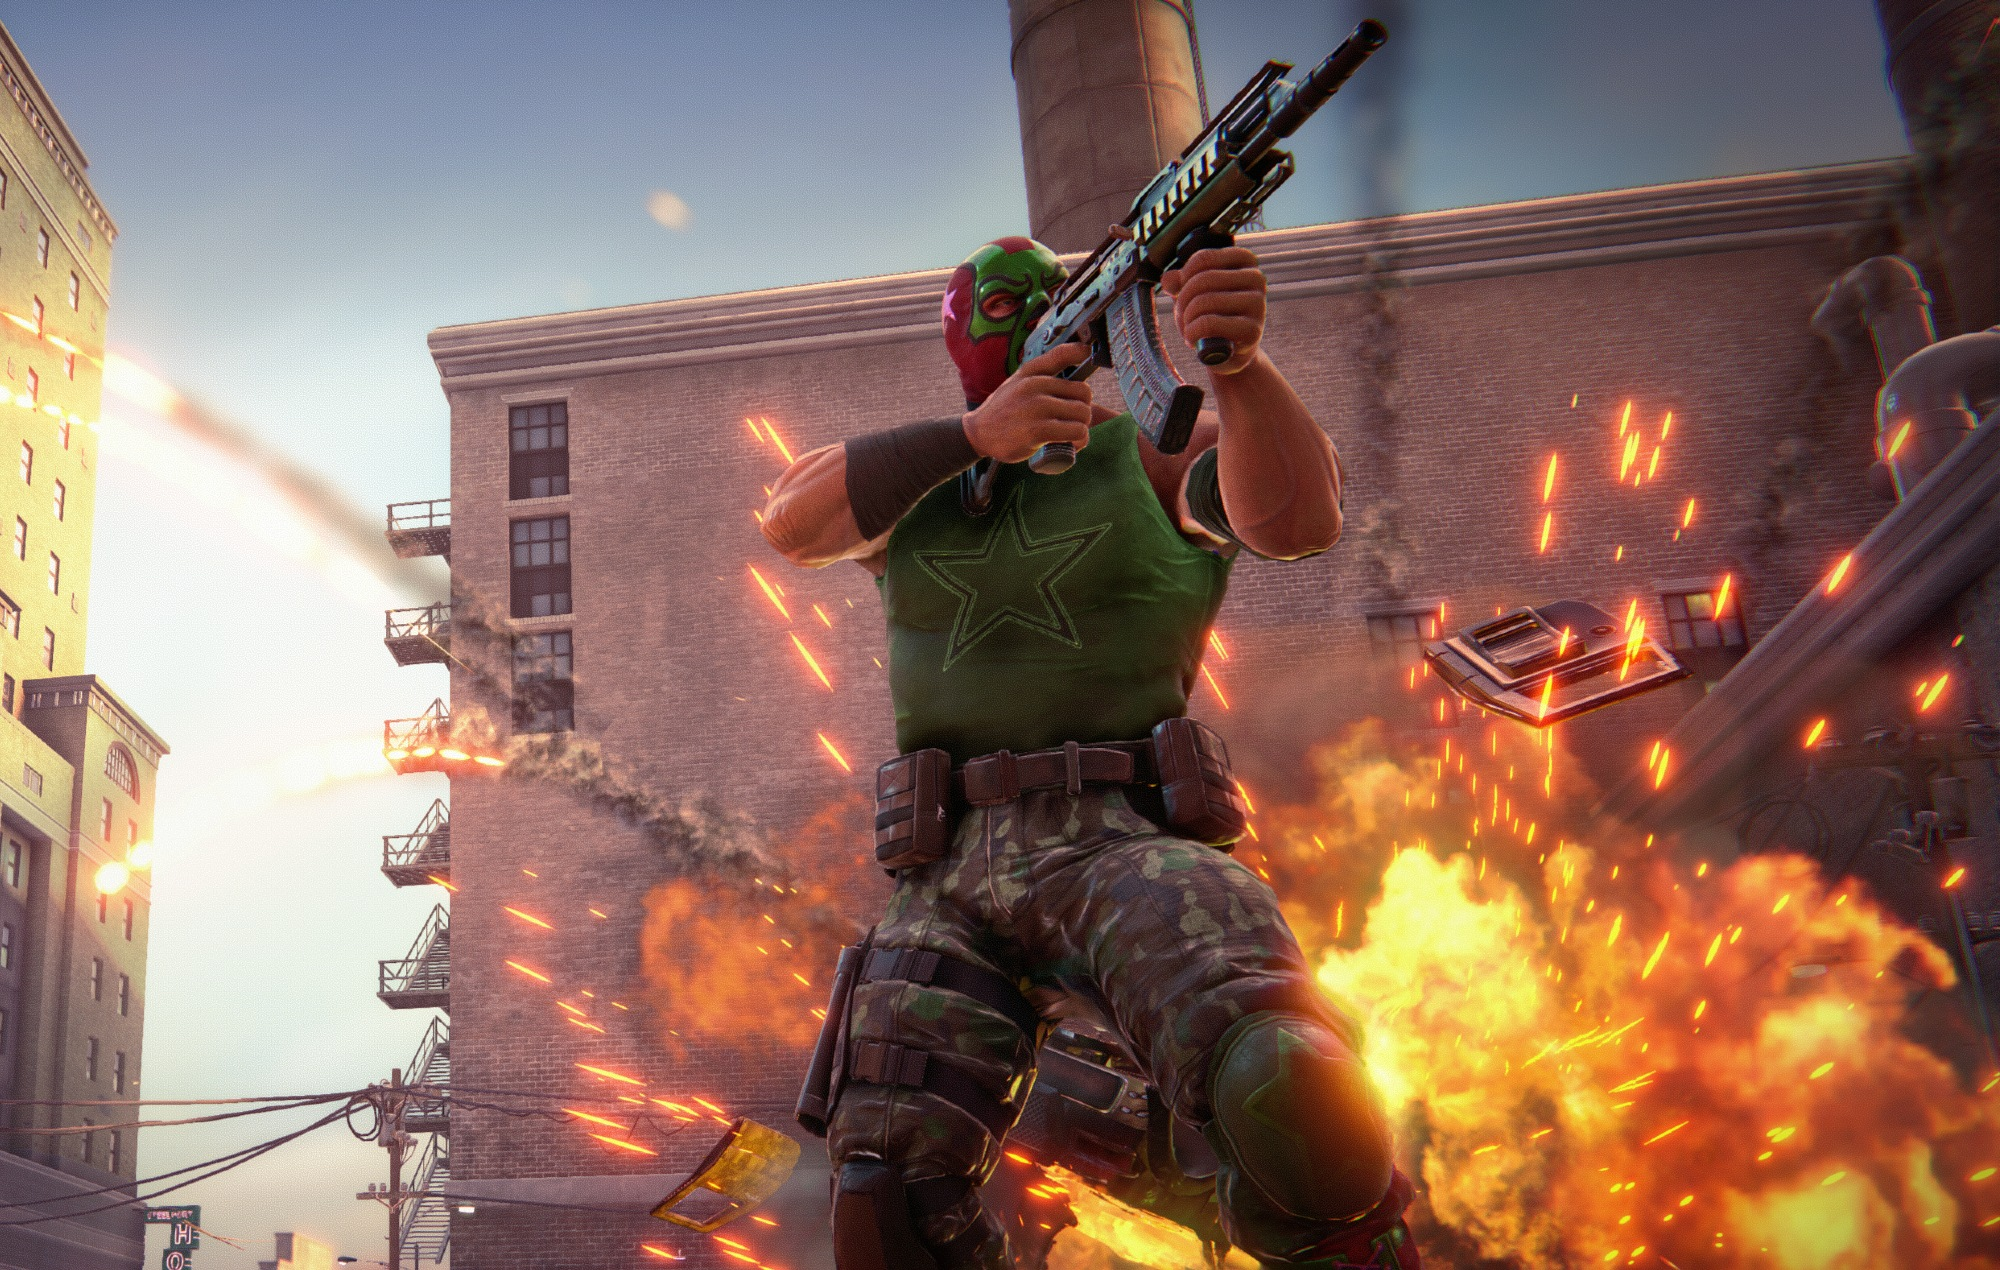 Saints Row: The Third Remastered' confirmed for PS4, Xbox One and PC